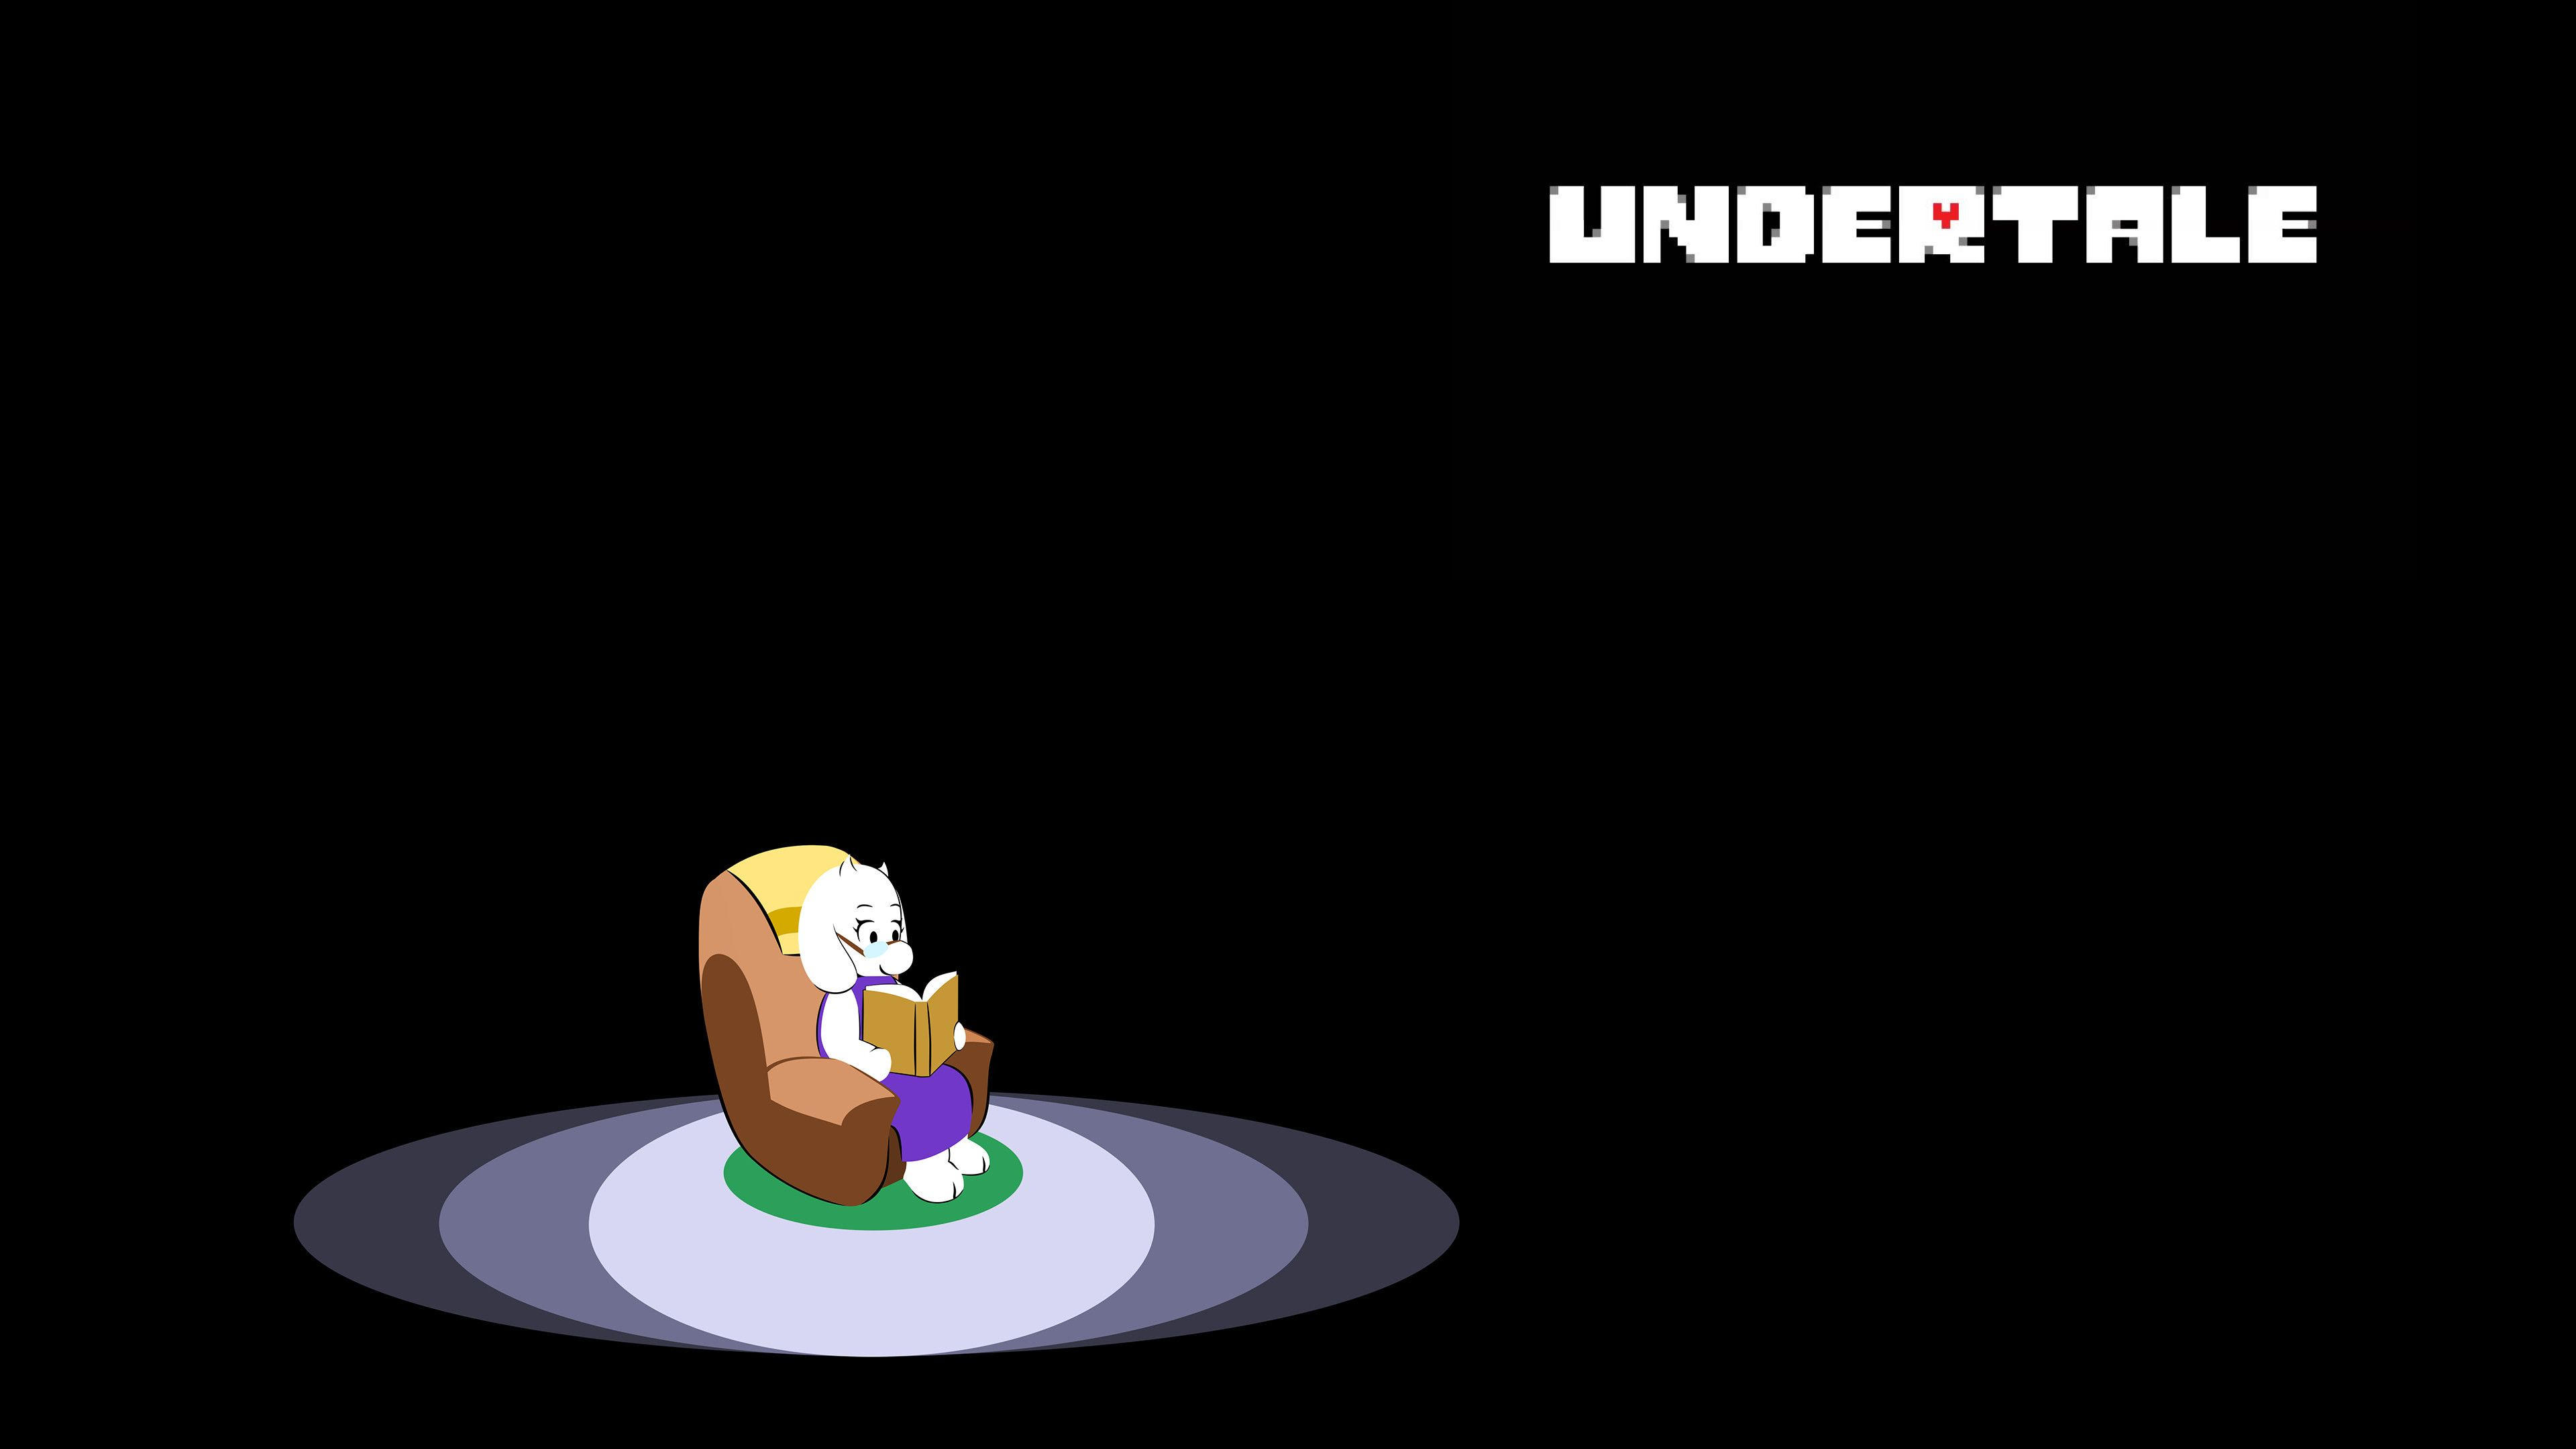 undertale screensavers